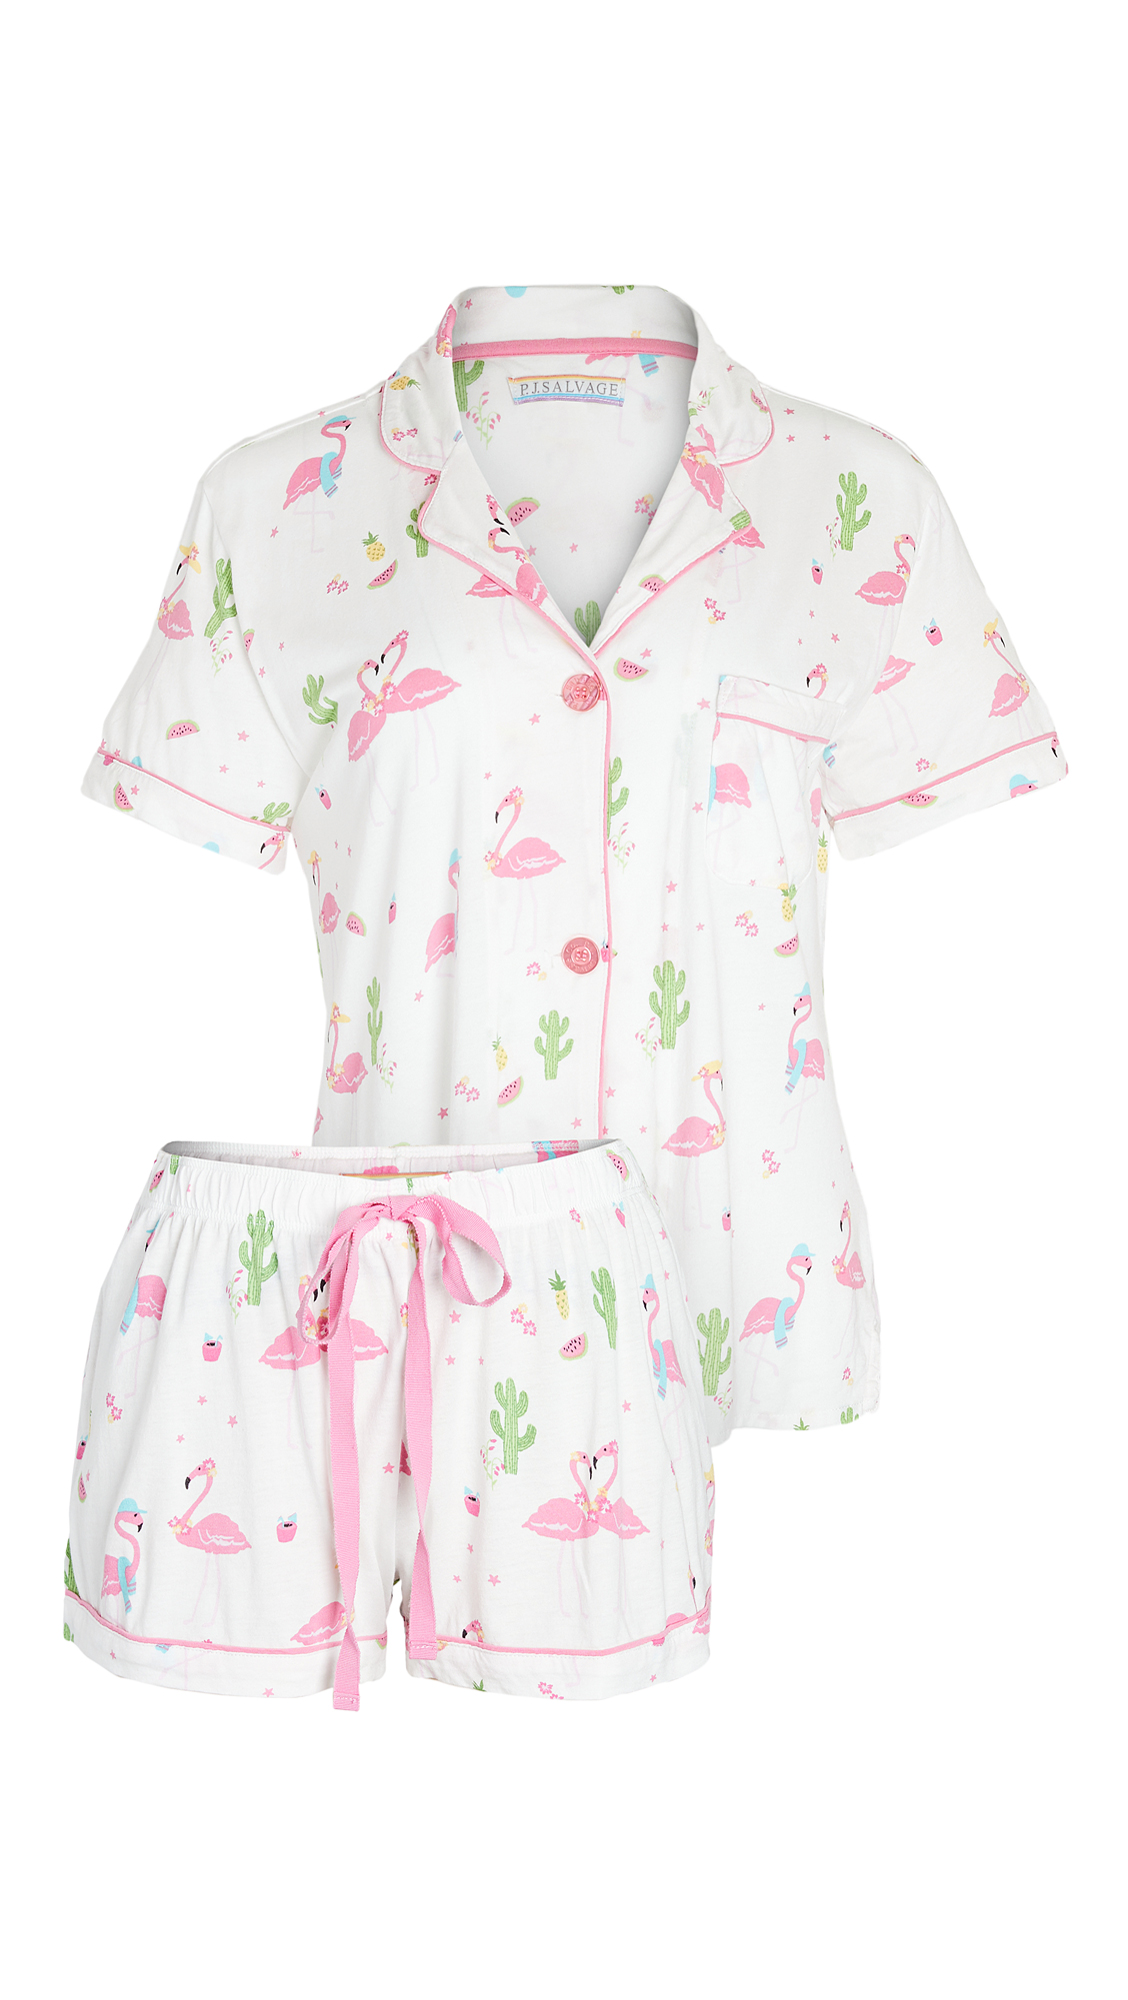 PJ Salvage Playful Print PJ Set